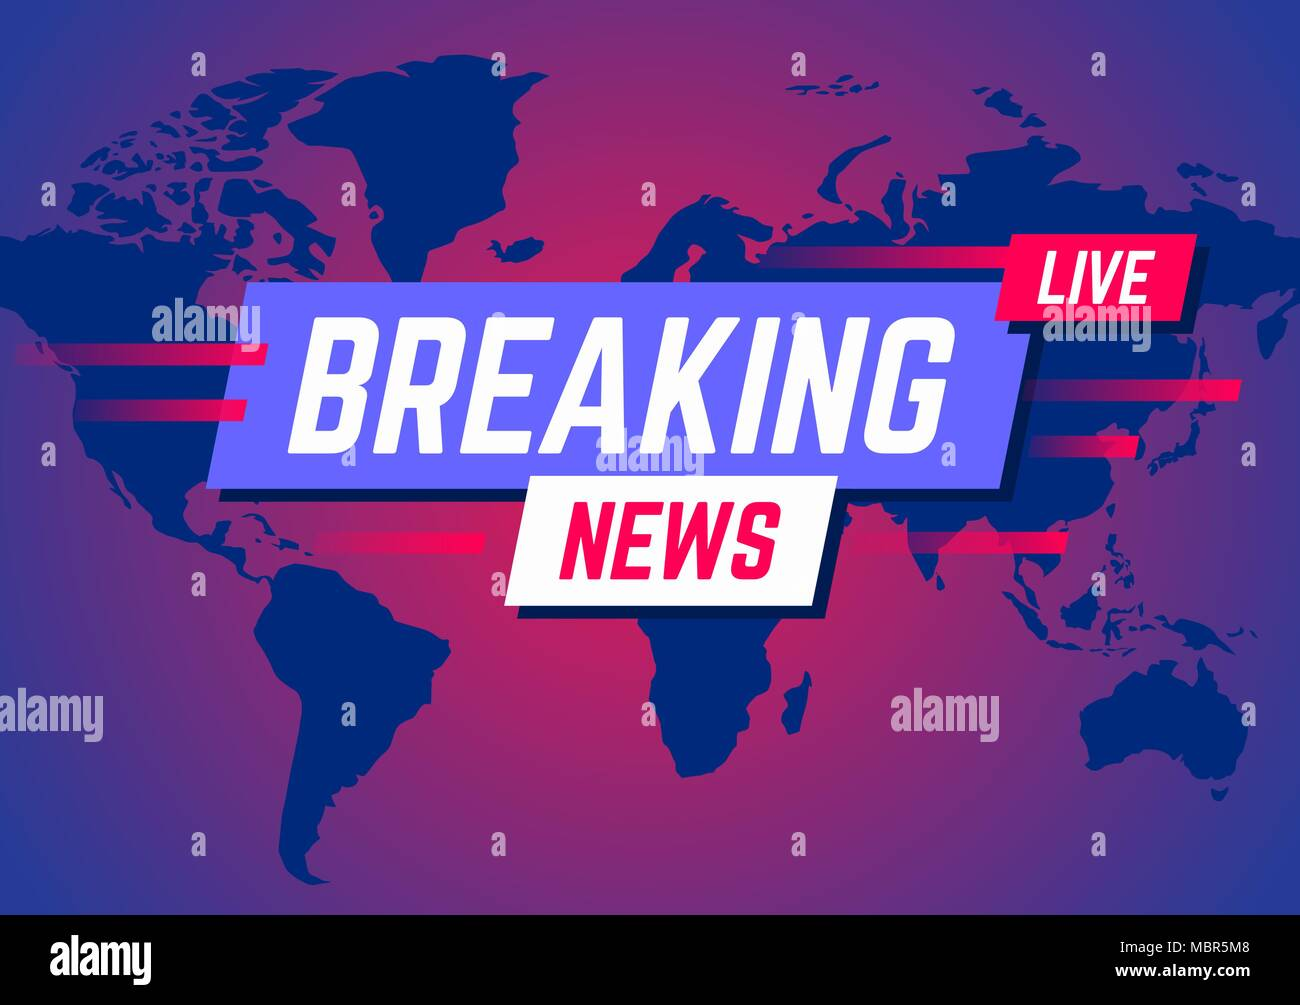 Breaking News Broadcast And Live On World Map Background Vector Illustration